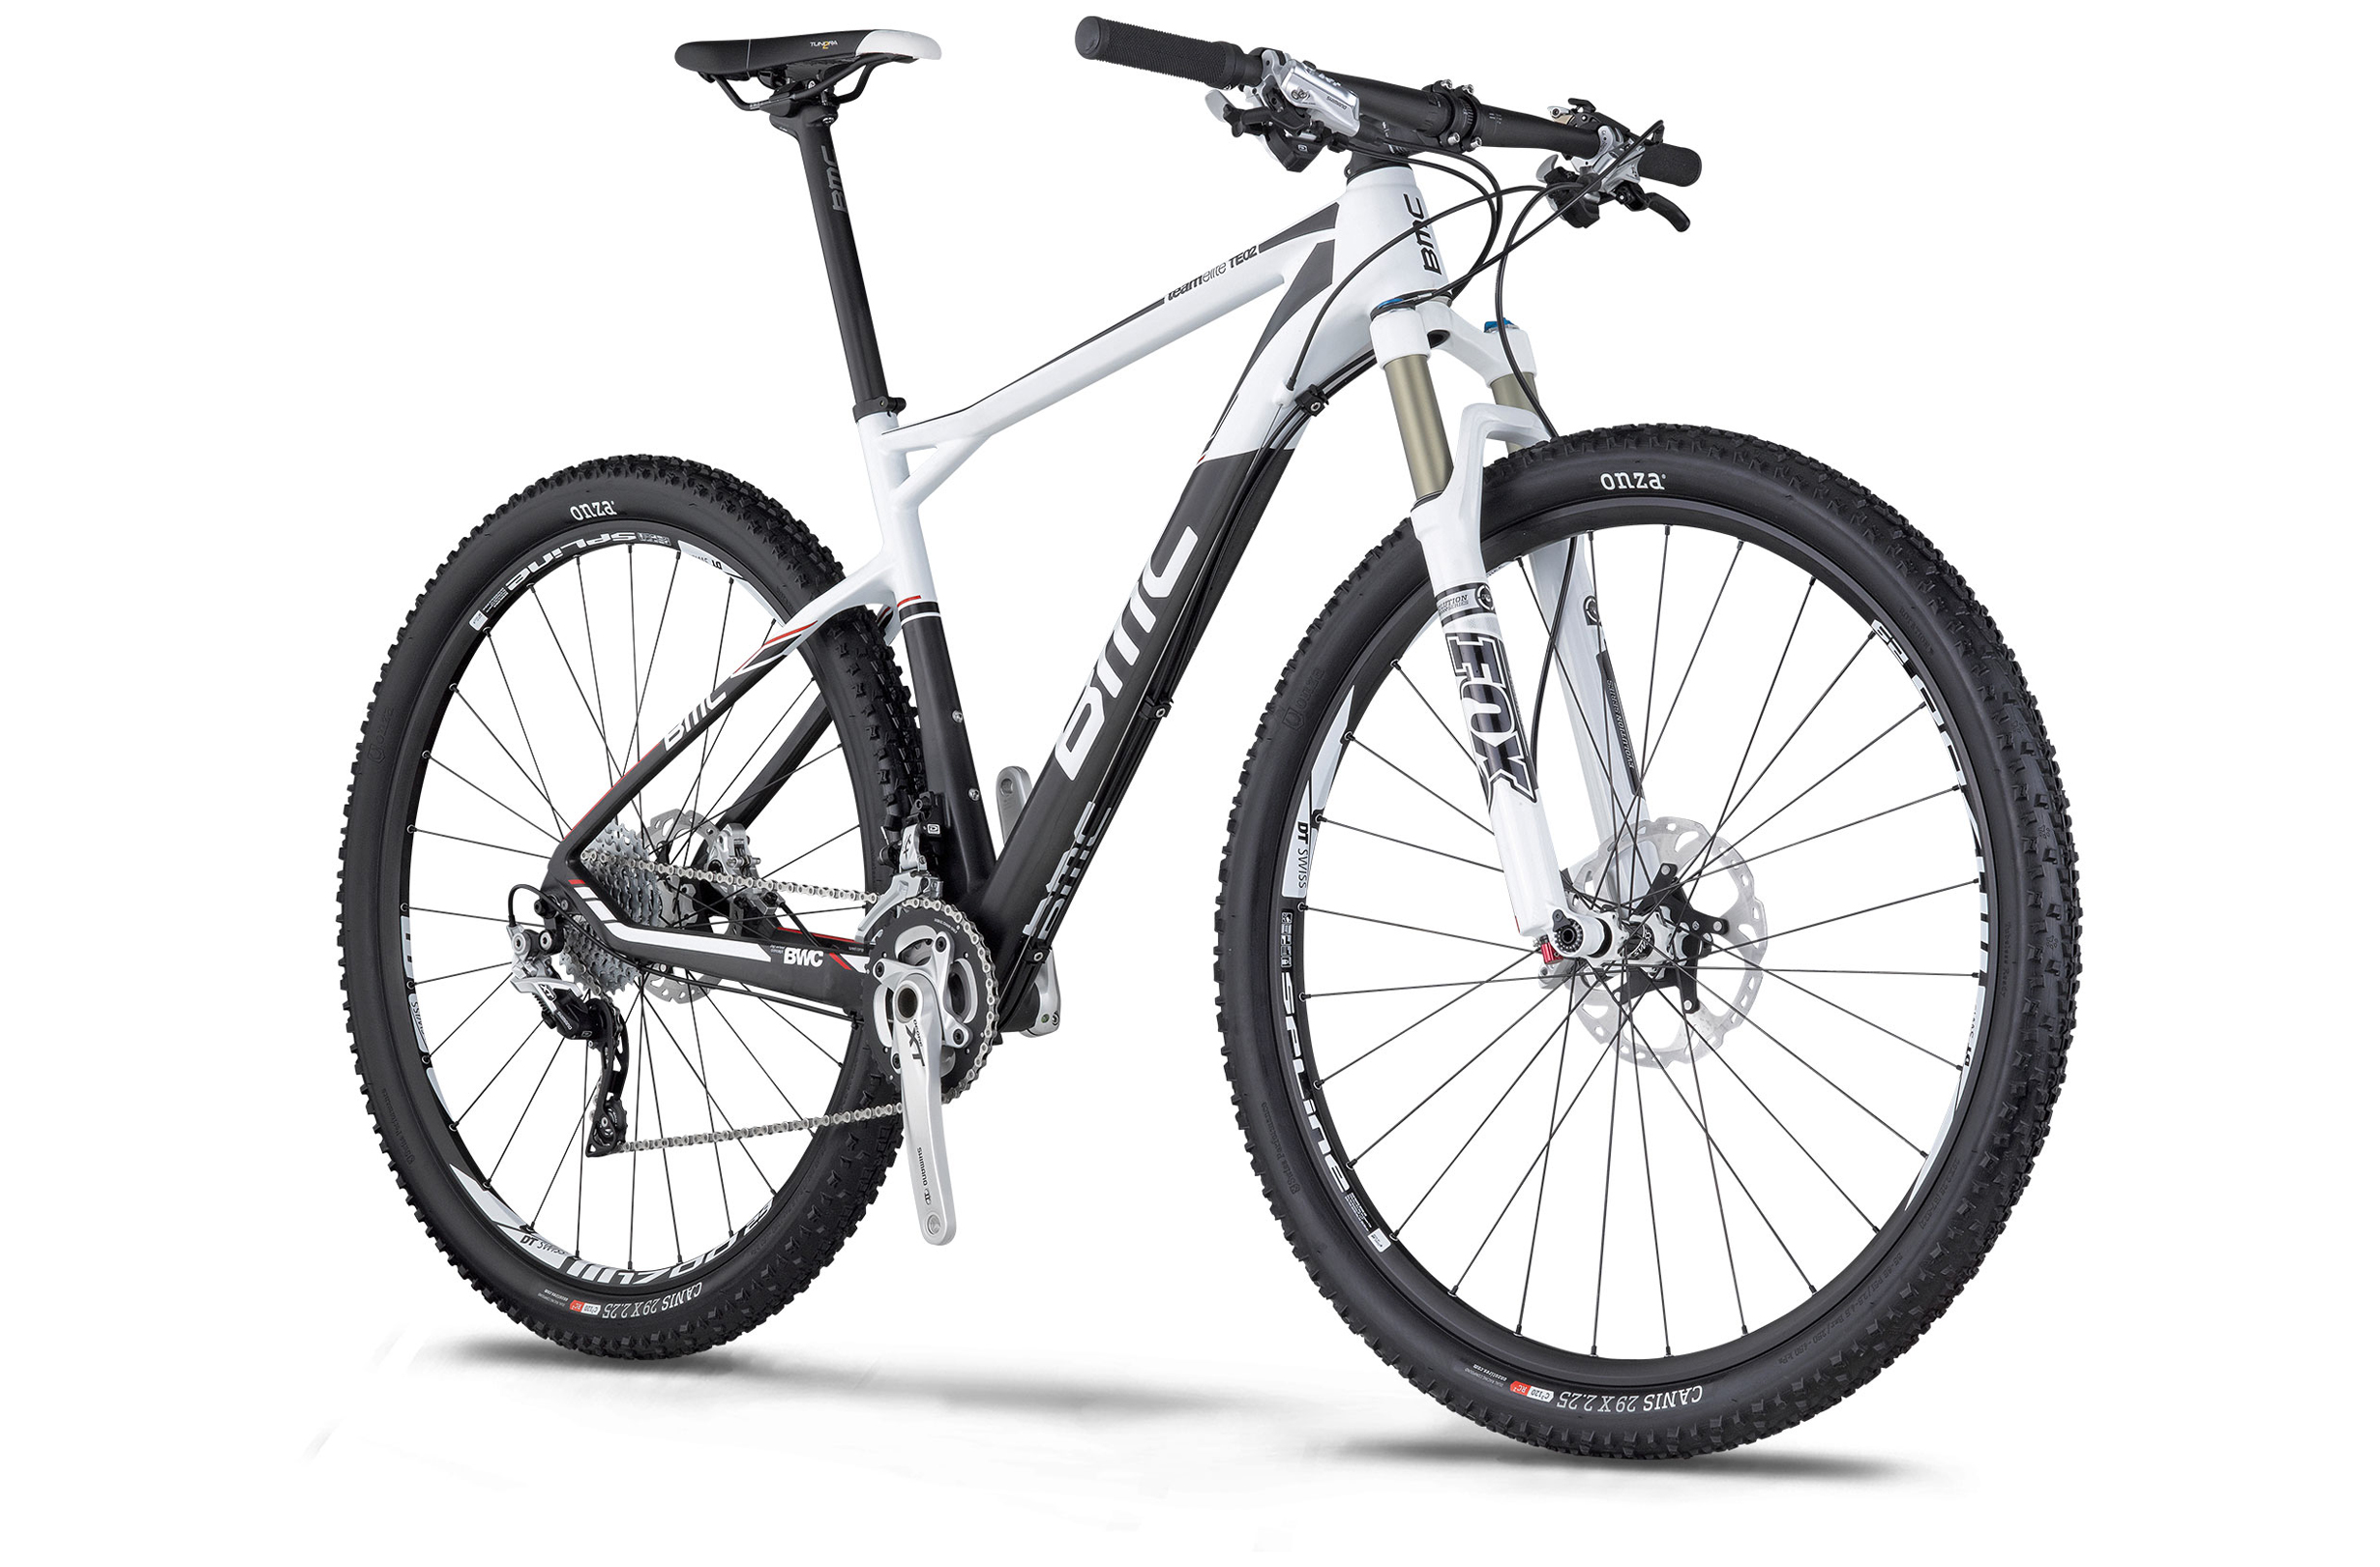 Teamelite Te02 29er Xt 2014 on back ache